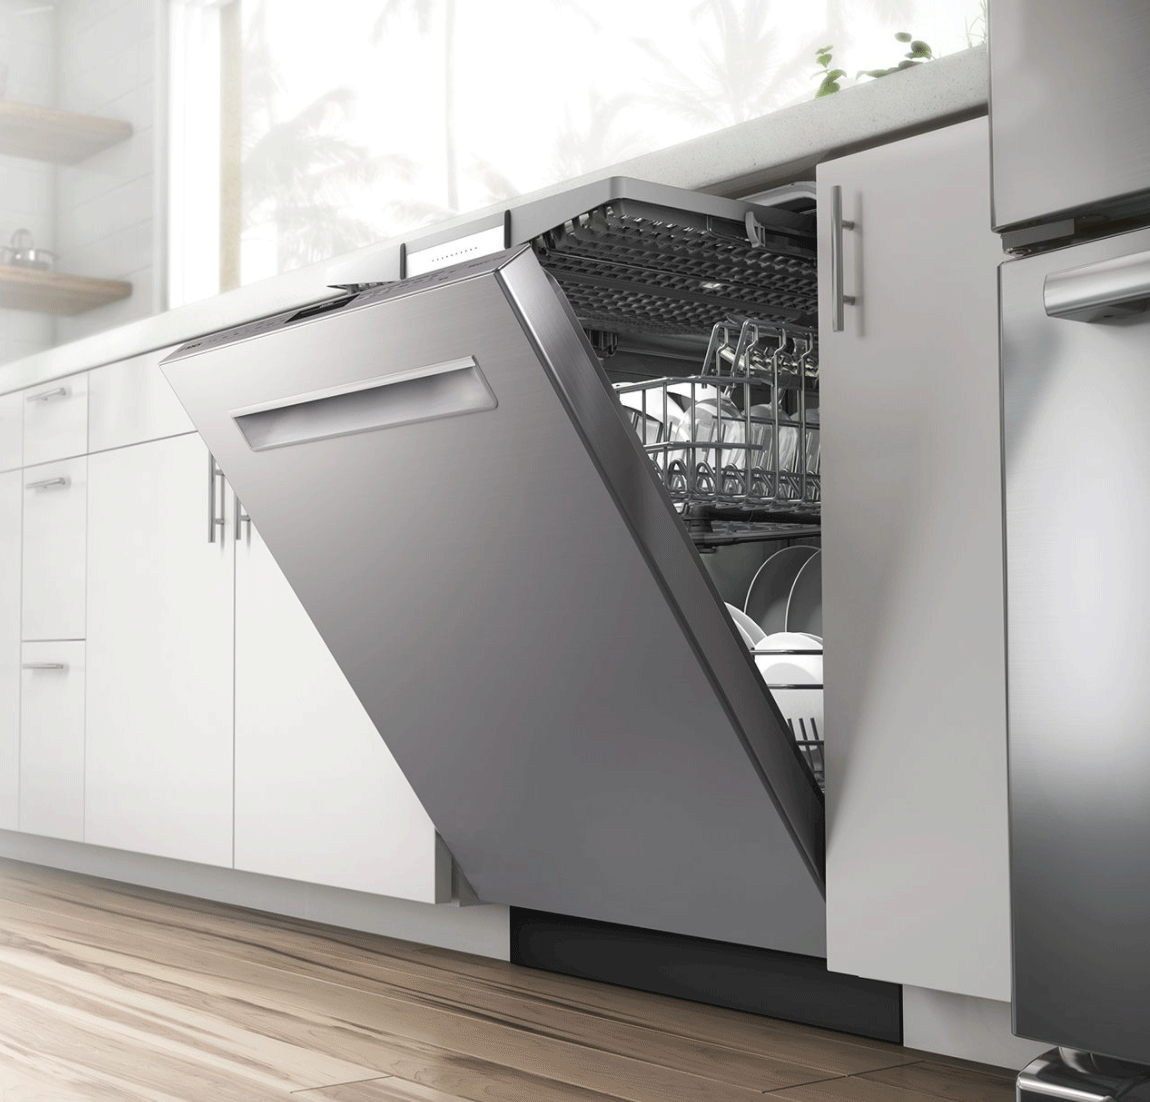 Bosch Dishwasher Review Ascenta Vs 300 Vs 500 Vs 800